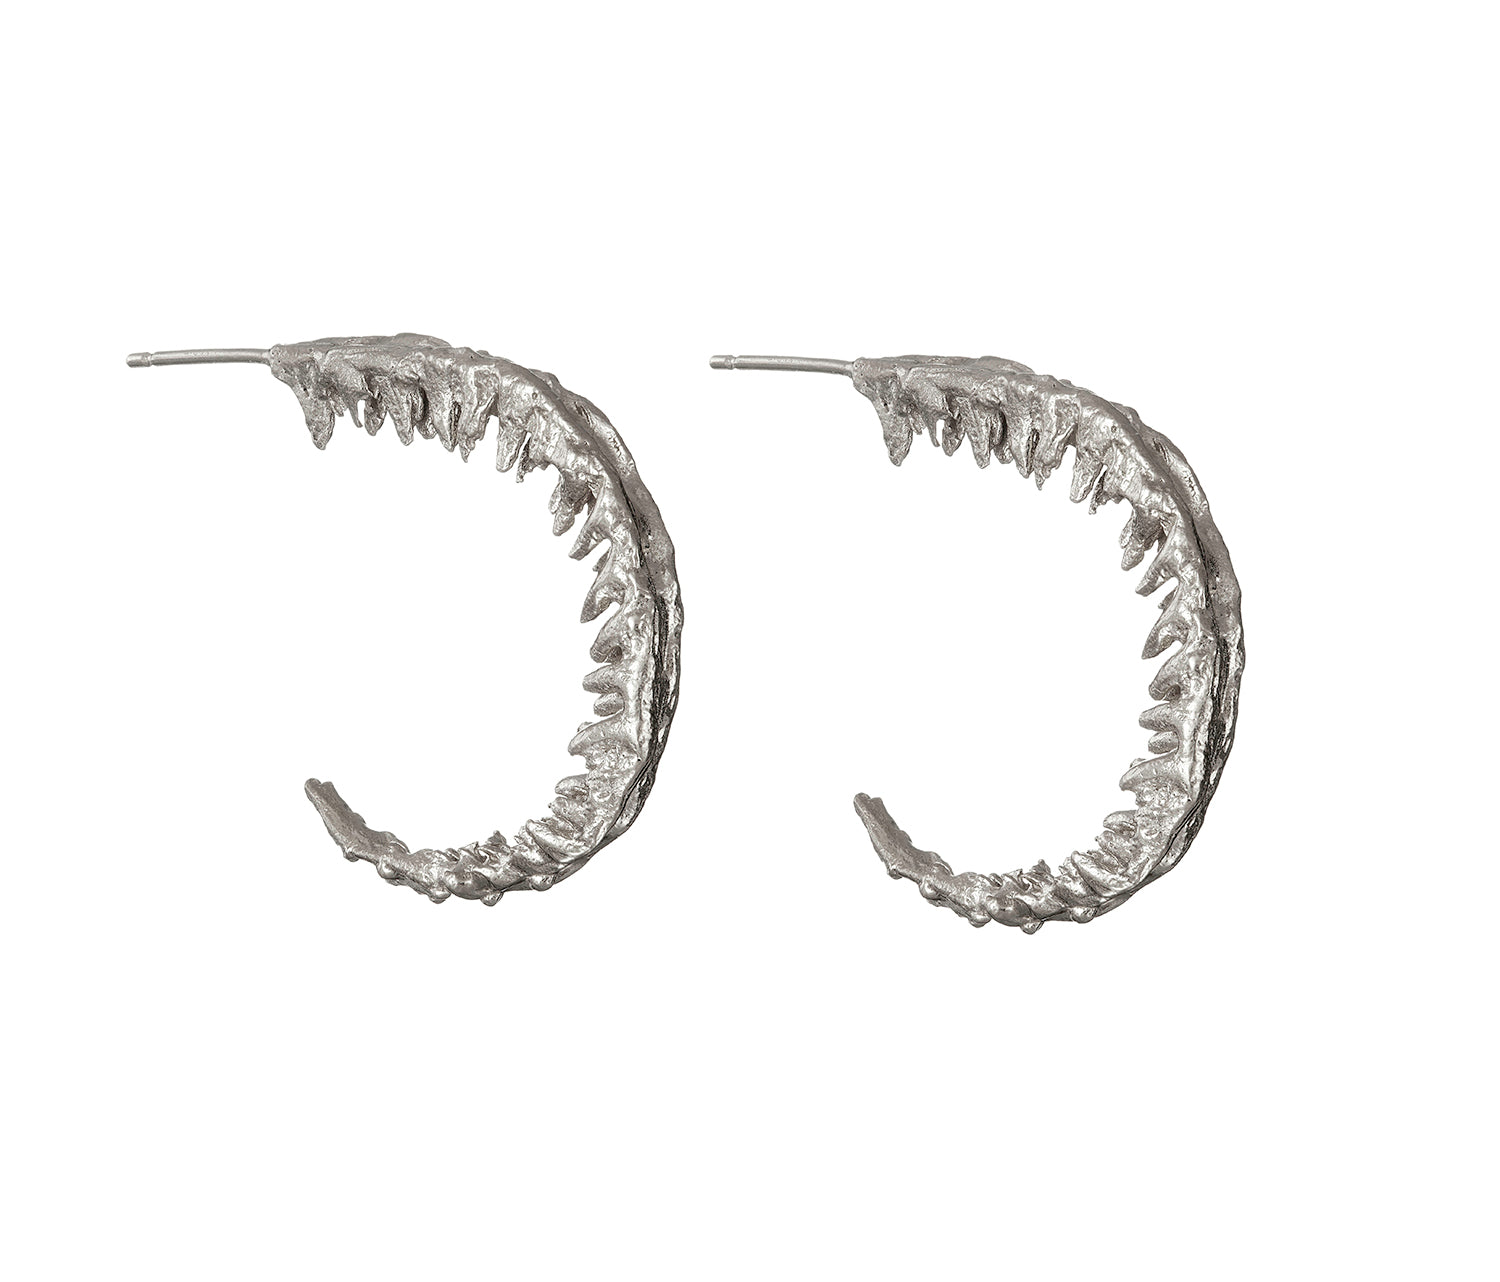 Fern hoop earrings - EilyOConnell